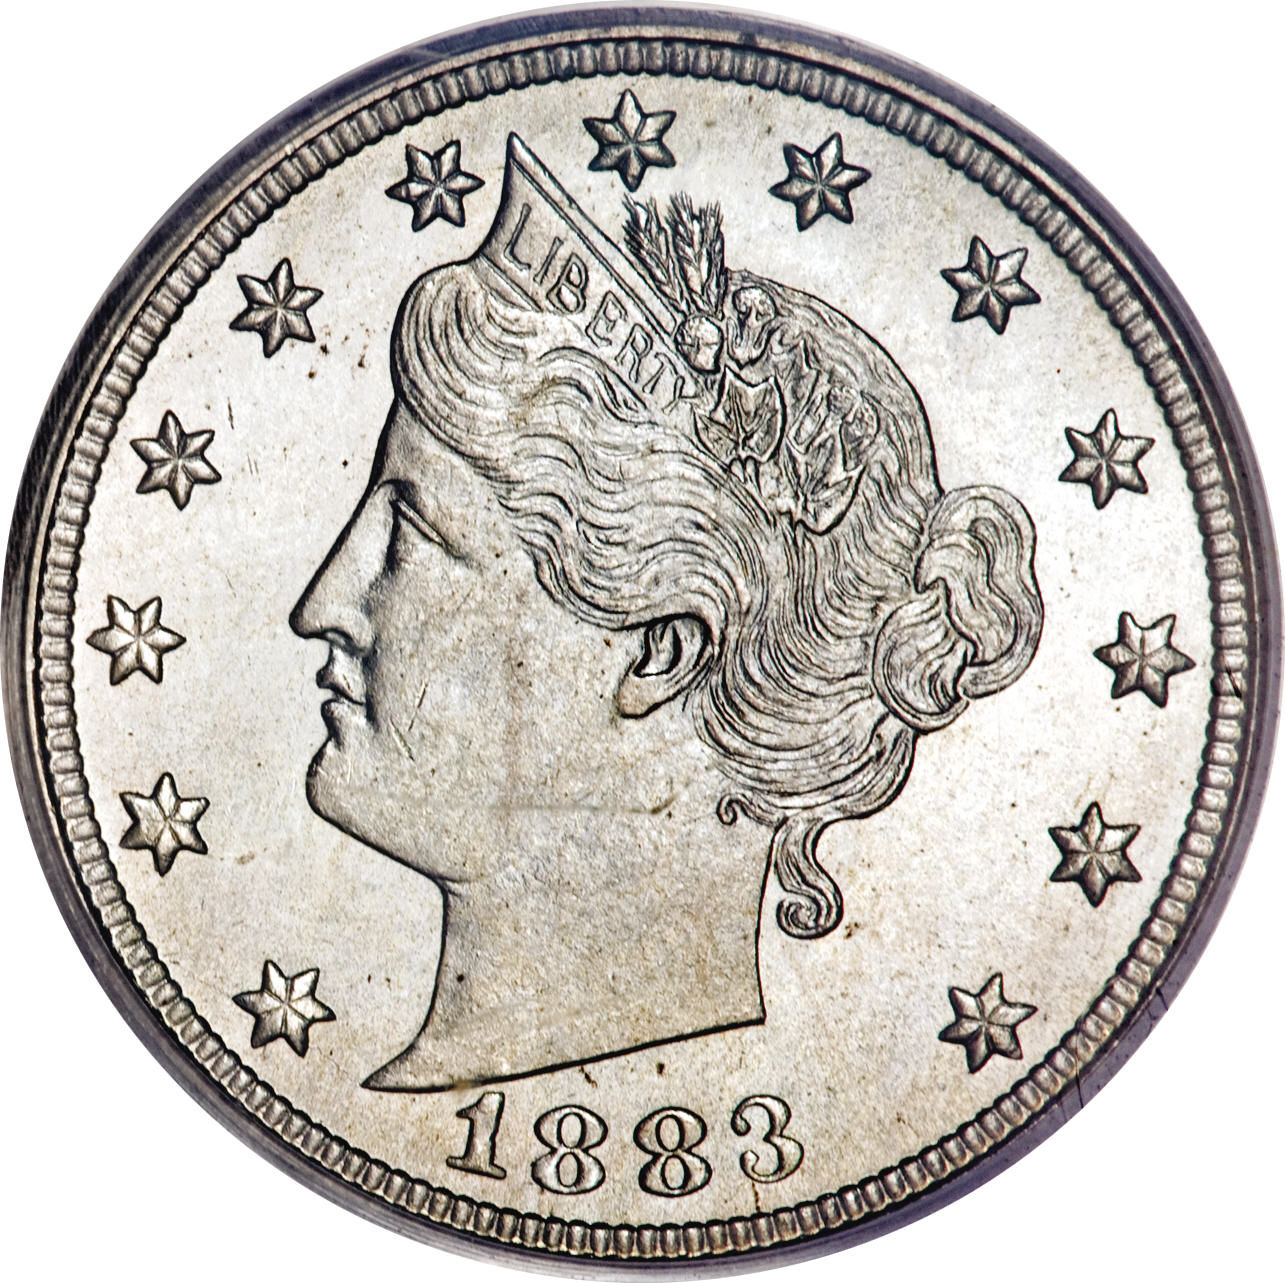 5 Cents Liberty Nickel Without Cents